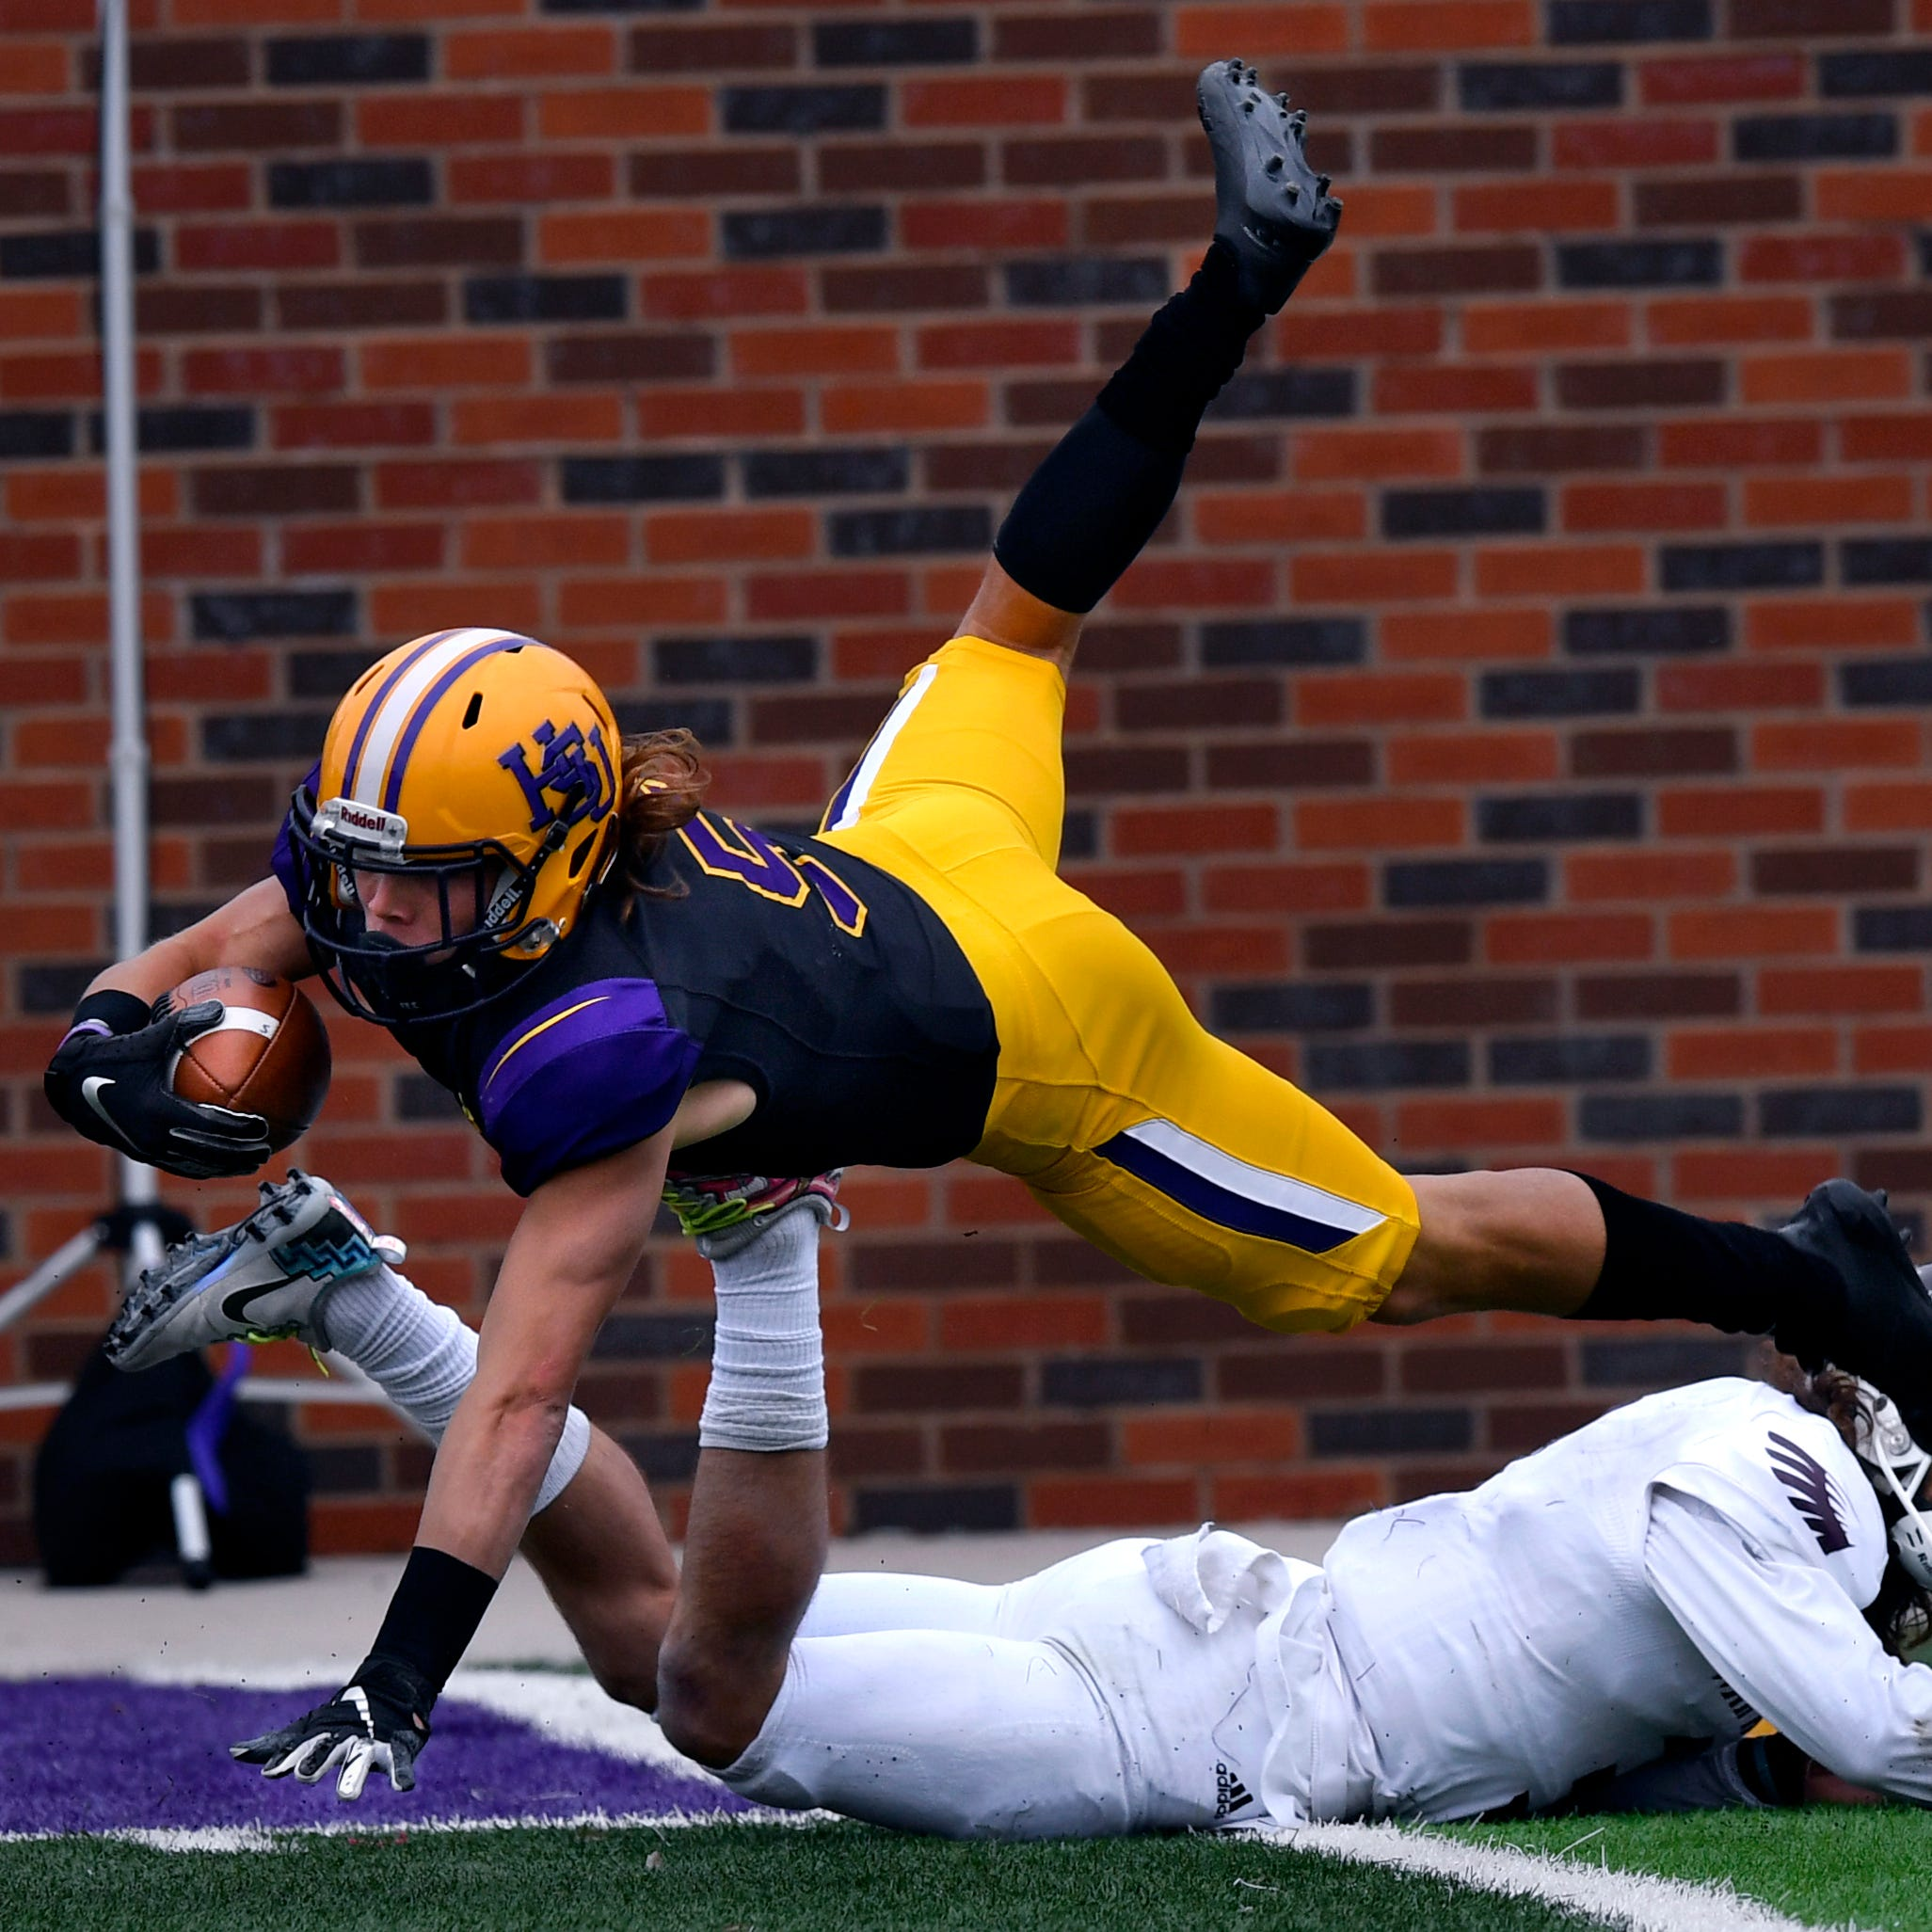 Hardin-Simmons pounds McMurry 83-6 in crosstown football